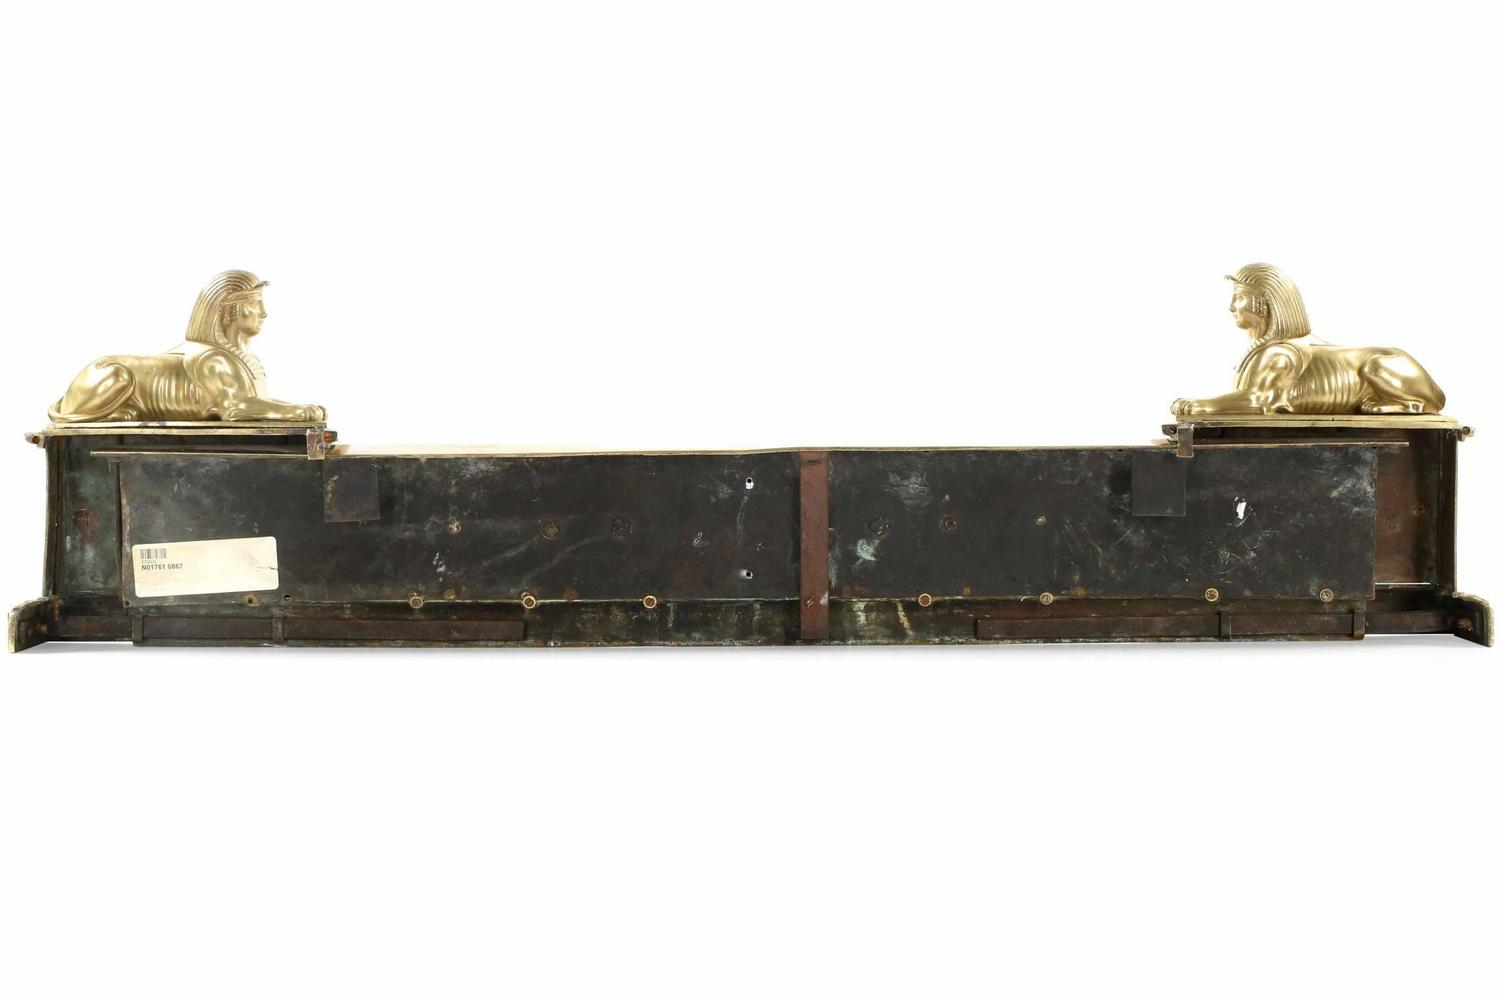 Regency Antique Brass Fire Fender With Flanking Egyptian Sphinx 19th Century For Sale At 1stdibs